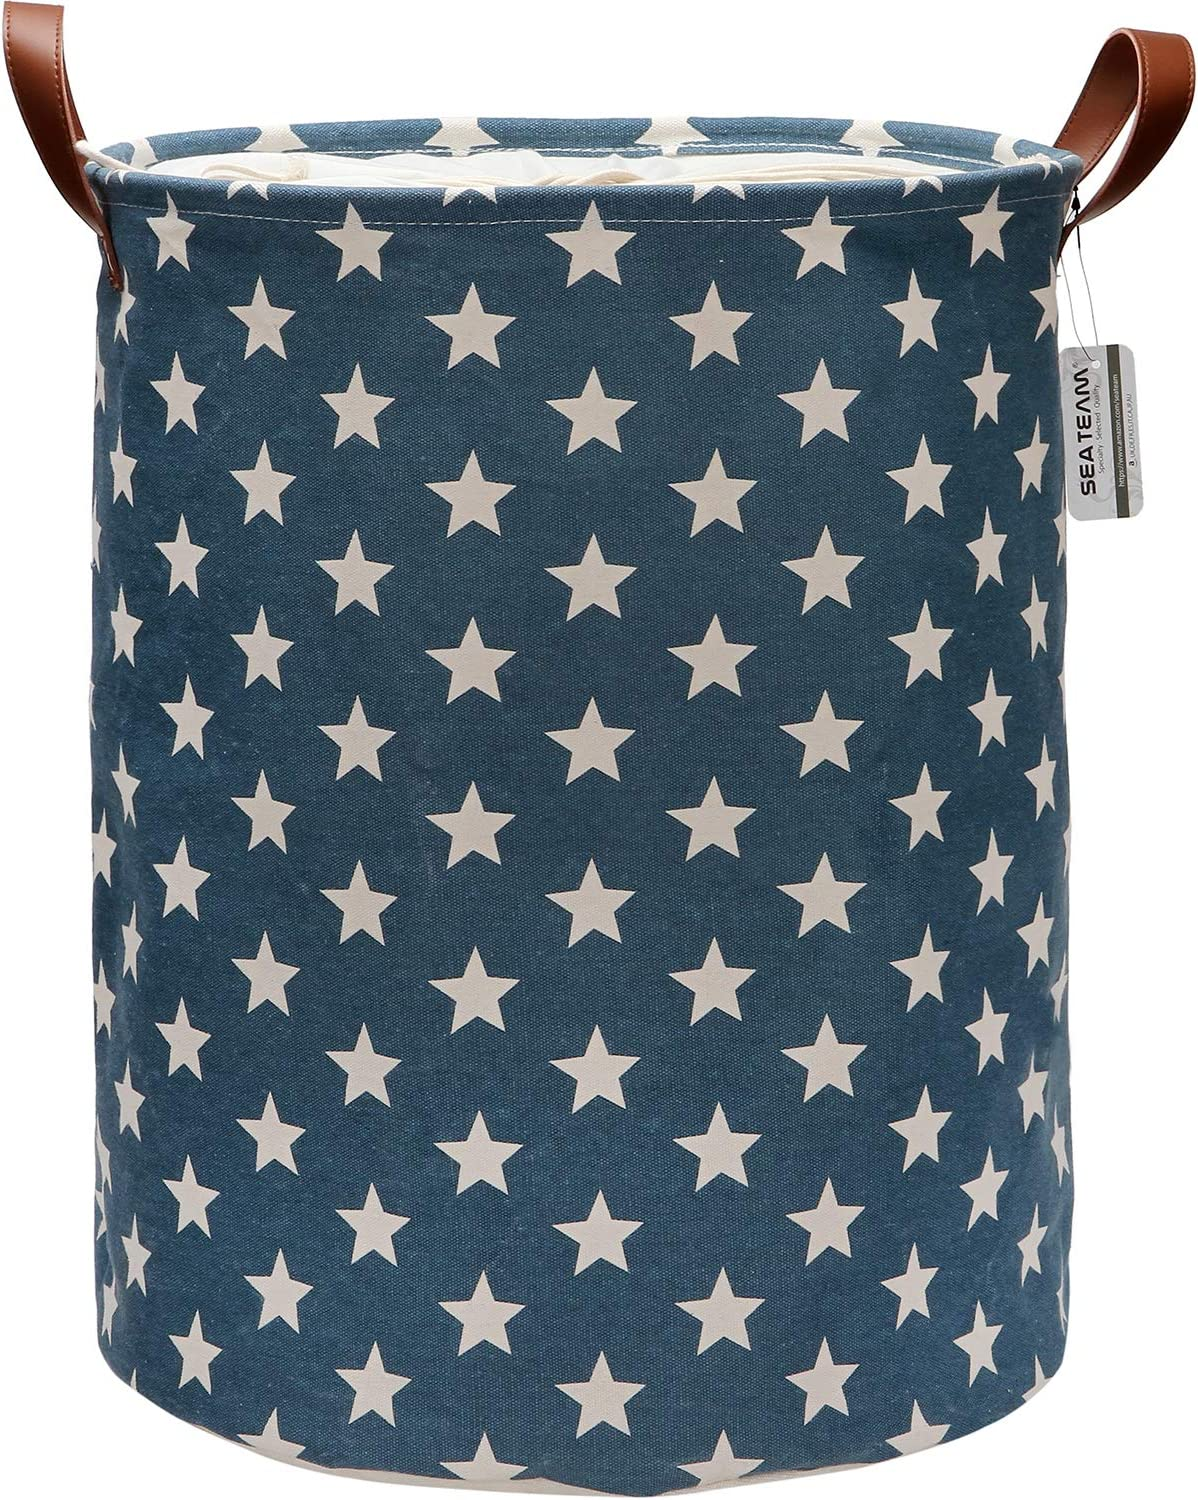 Sea Team Star Pattern Laundry Hamper Canvas Fabric Laundry Basket Collapsible Storage Bin with PU Leather Handles and Drawstring Closure, 19.7 by 15.7 inches, Waterproof Inner, Denim